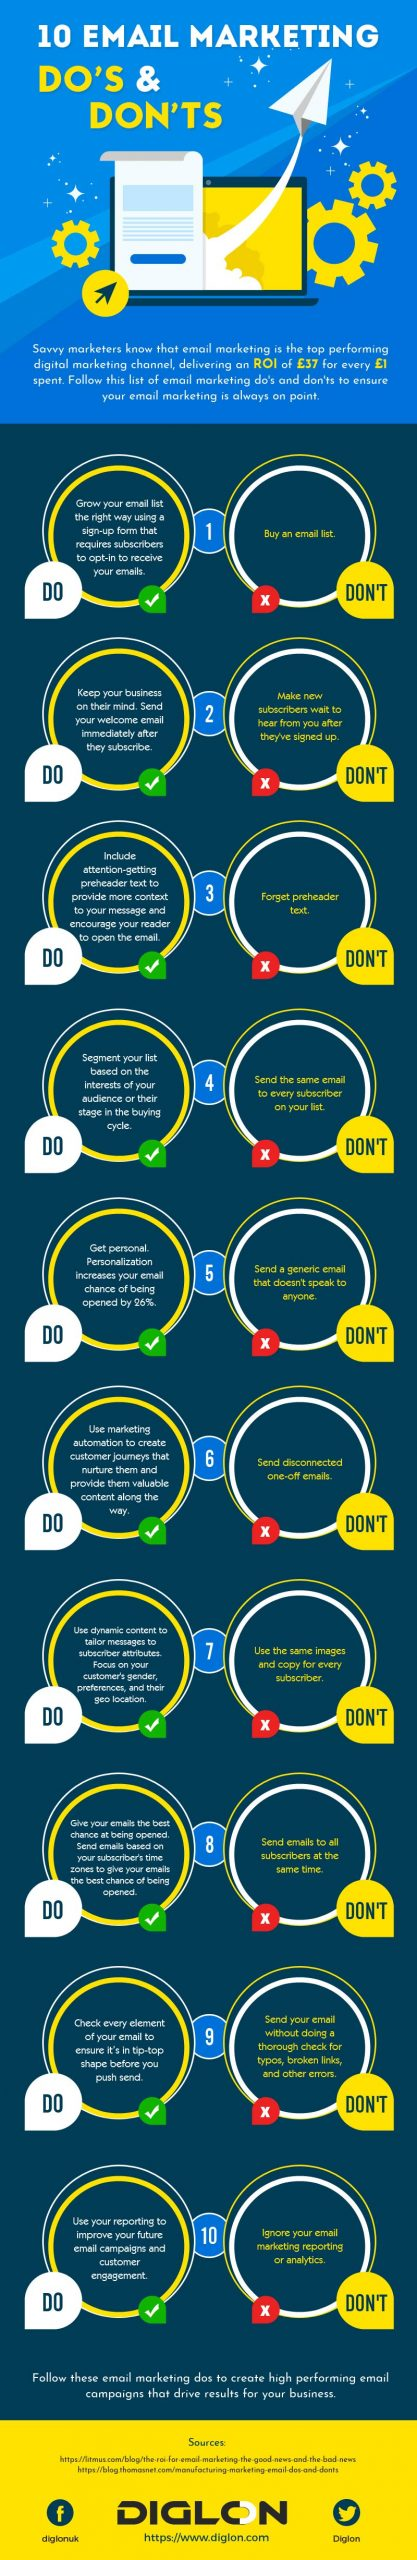 10 Email Marketing Do's & Don'ts – Infographic 4